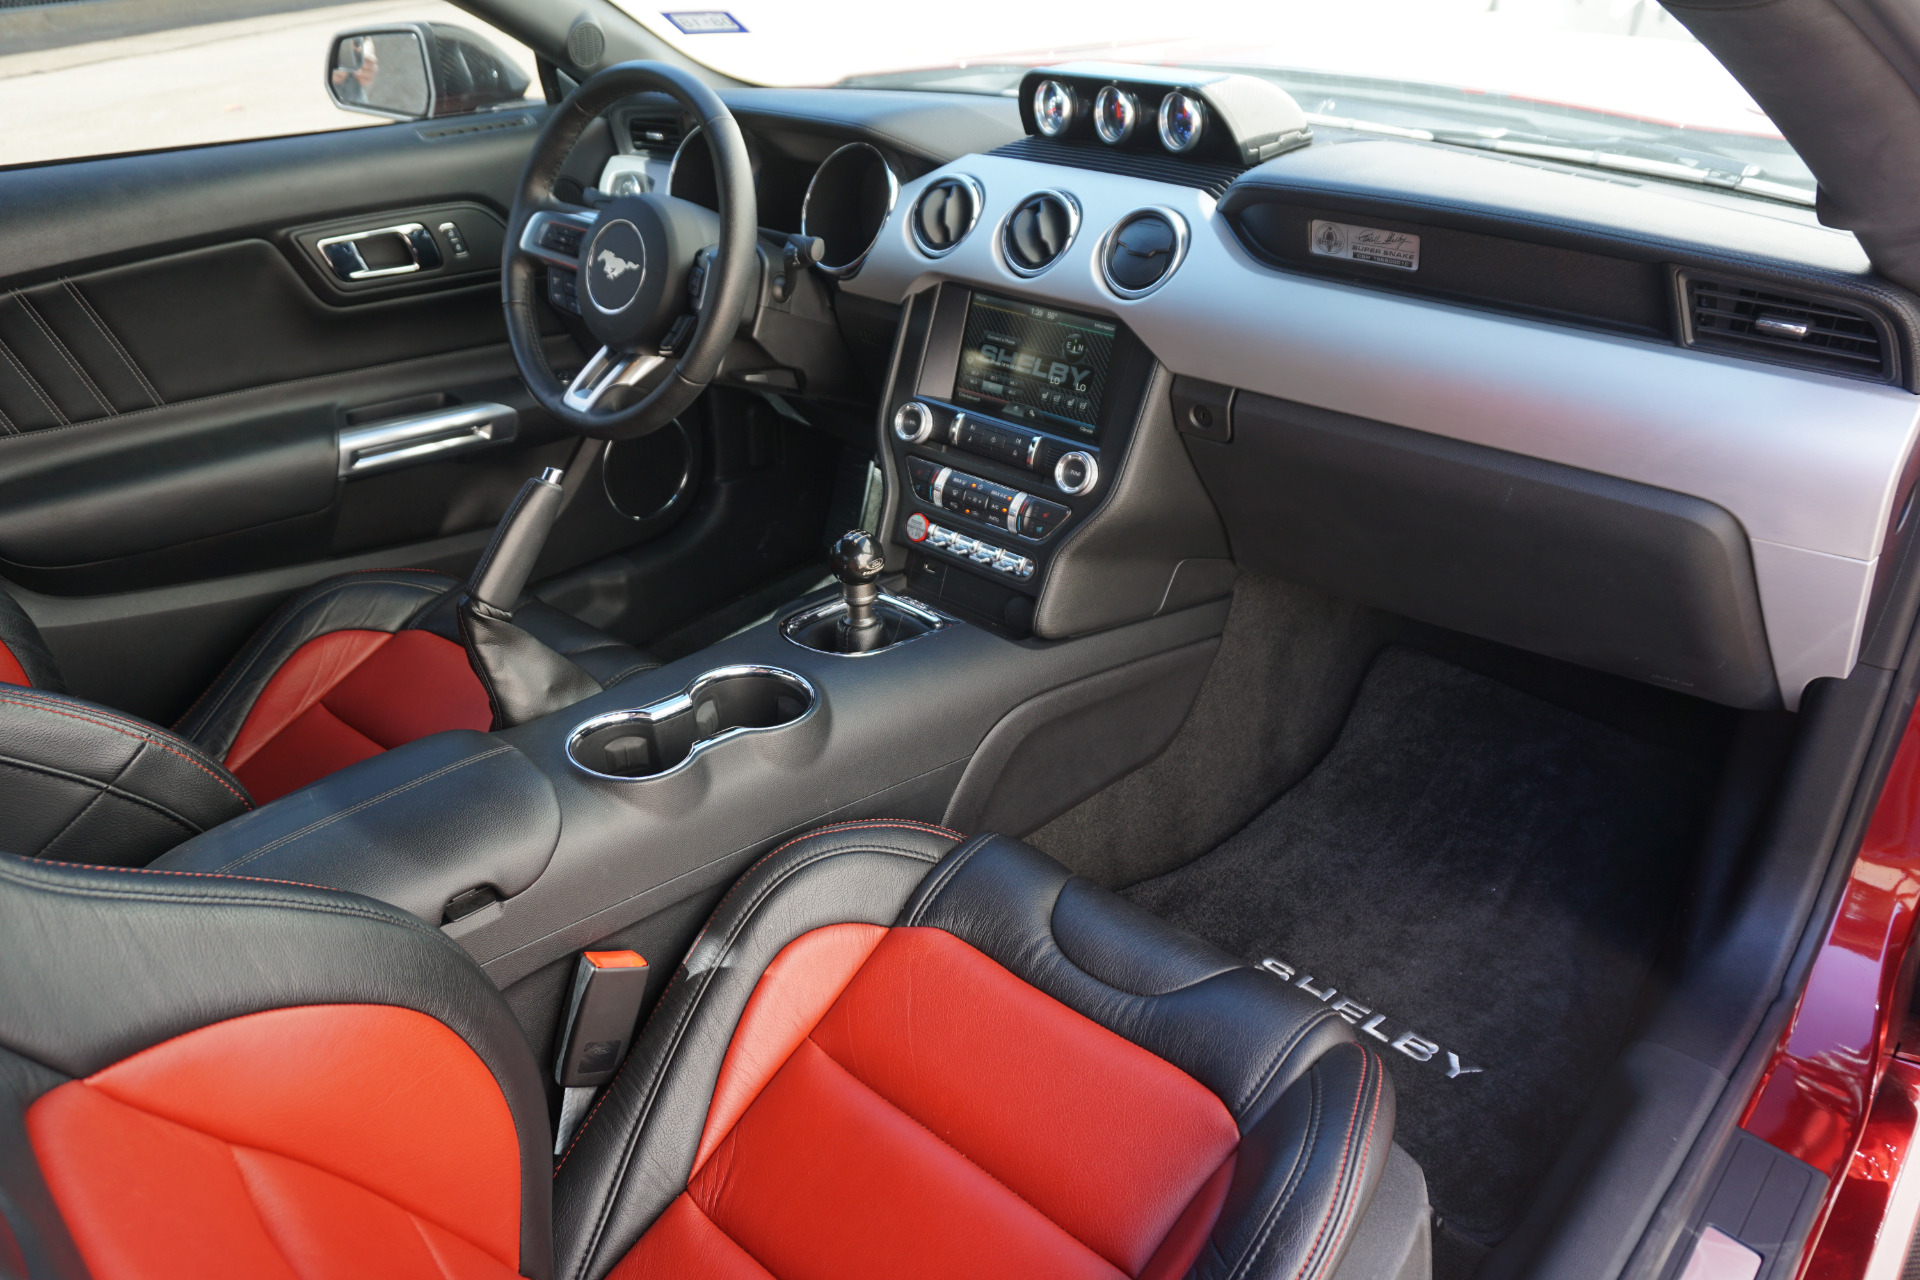 Used-2015-Ford-Mustang-Supersnake-Concept-Car